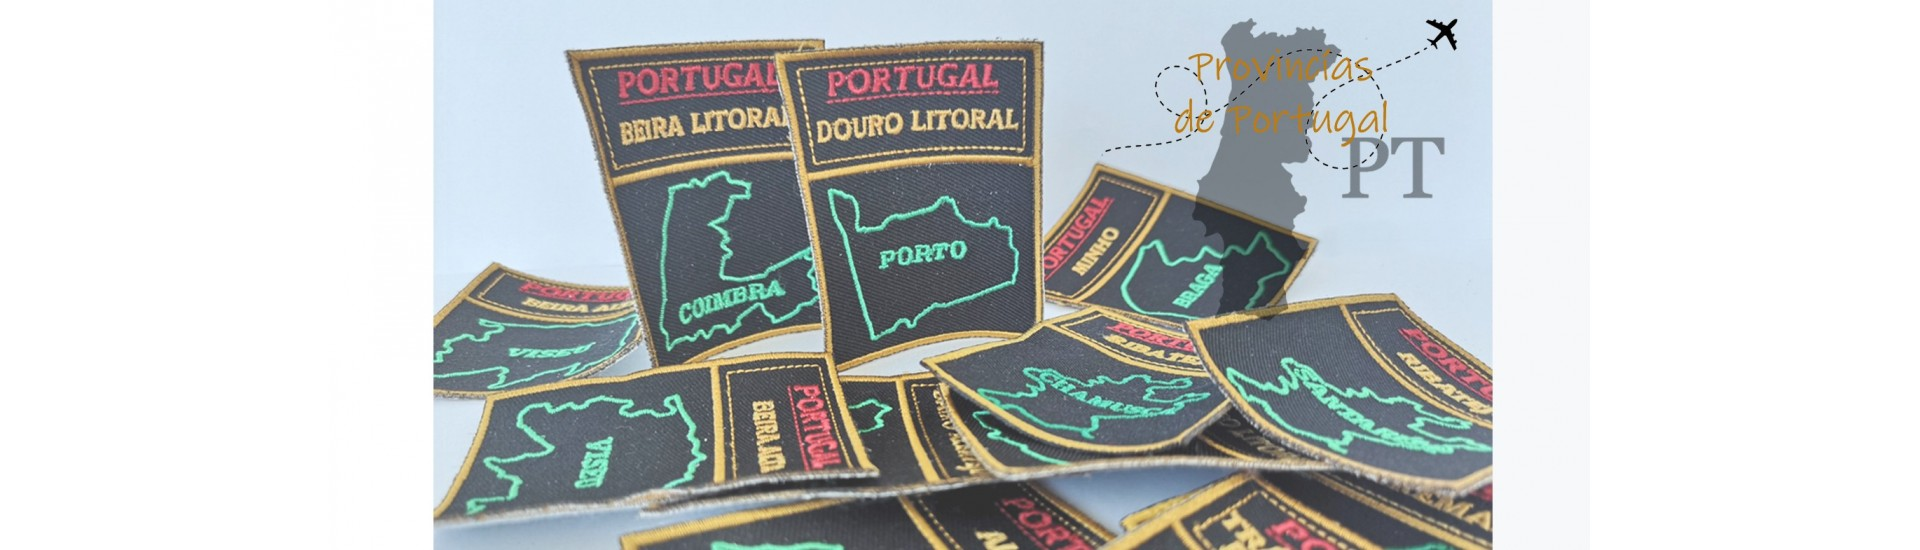 Provinces of Portugal Patches